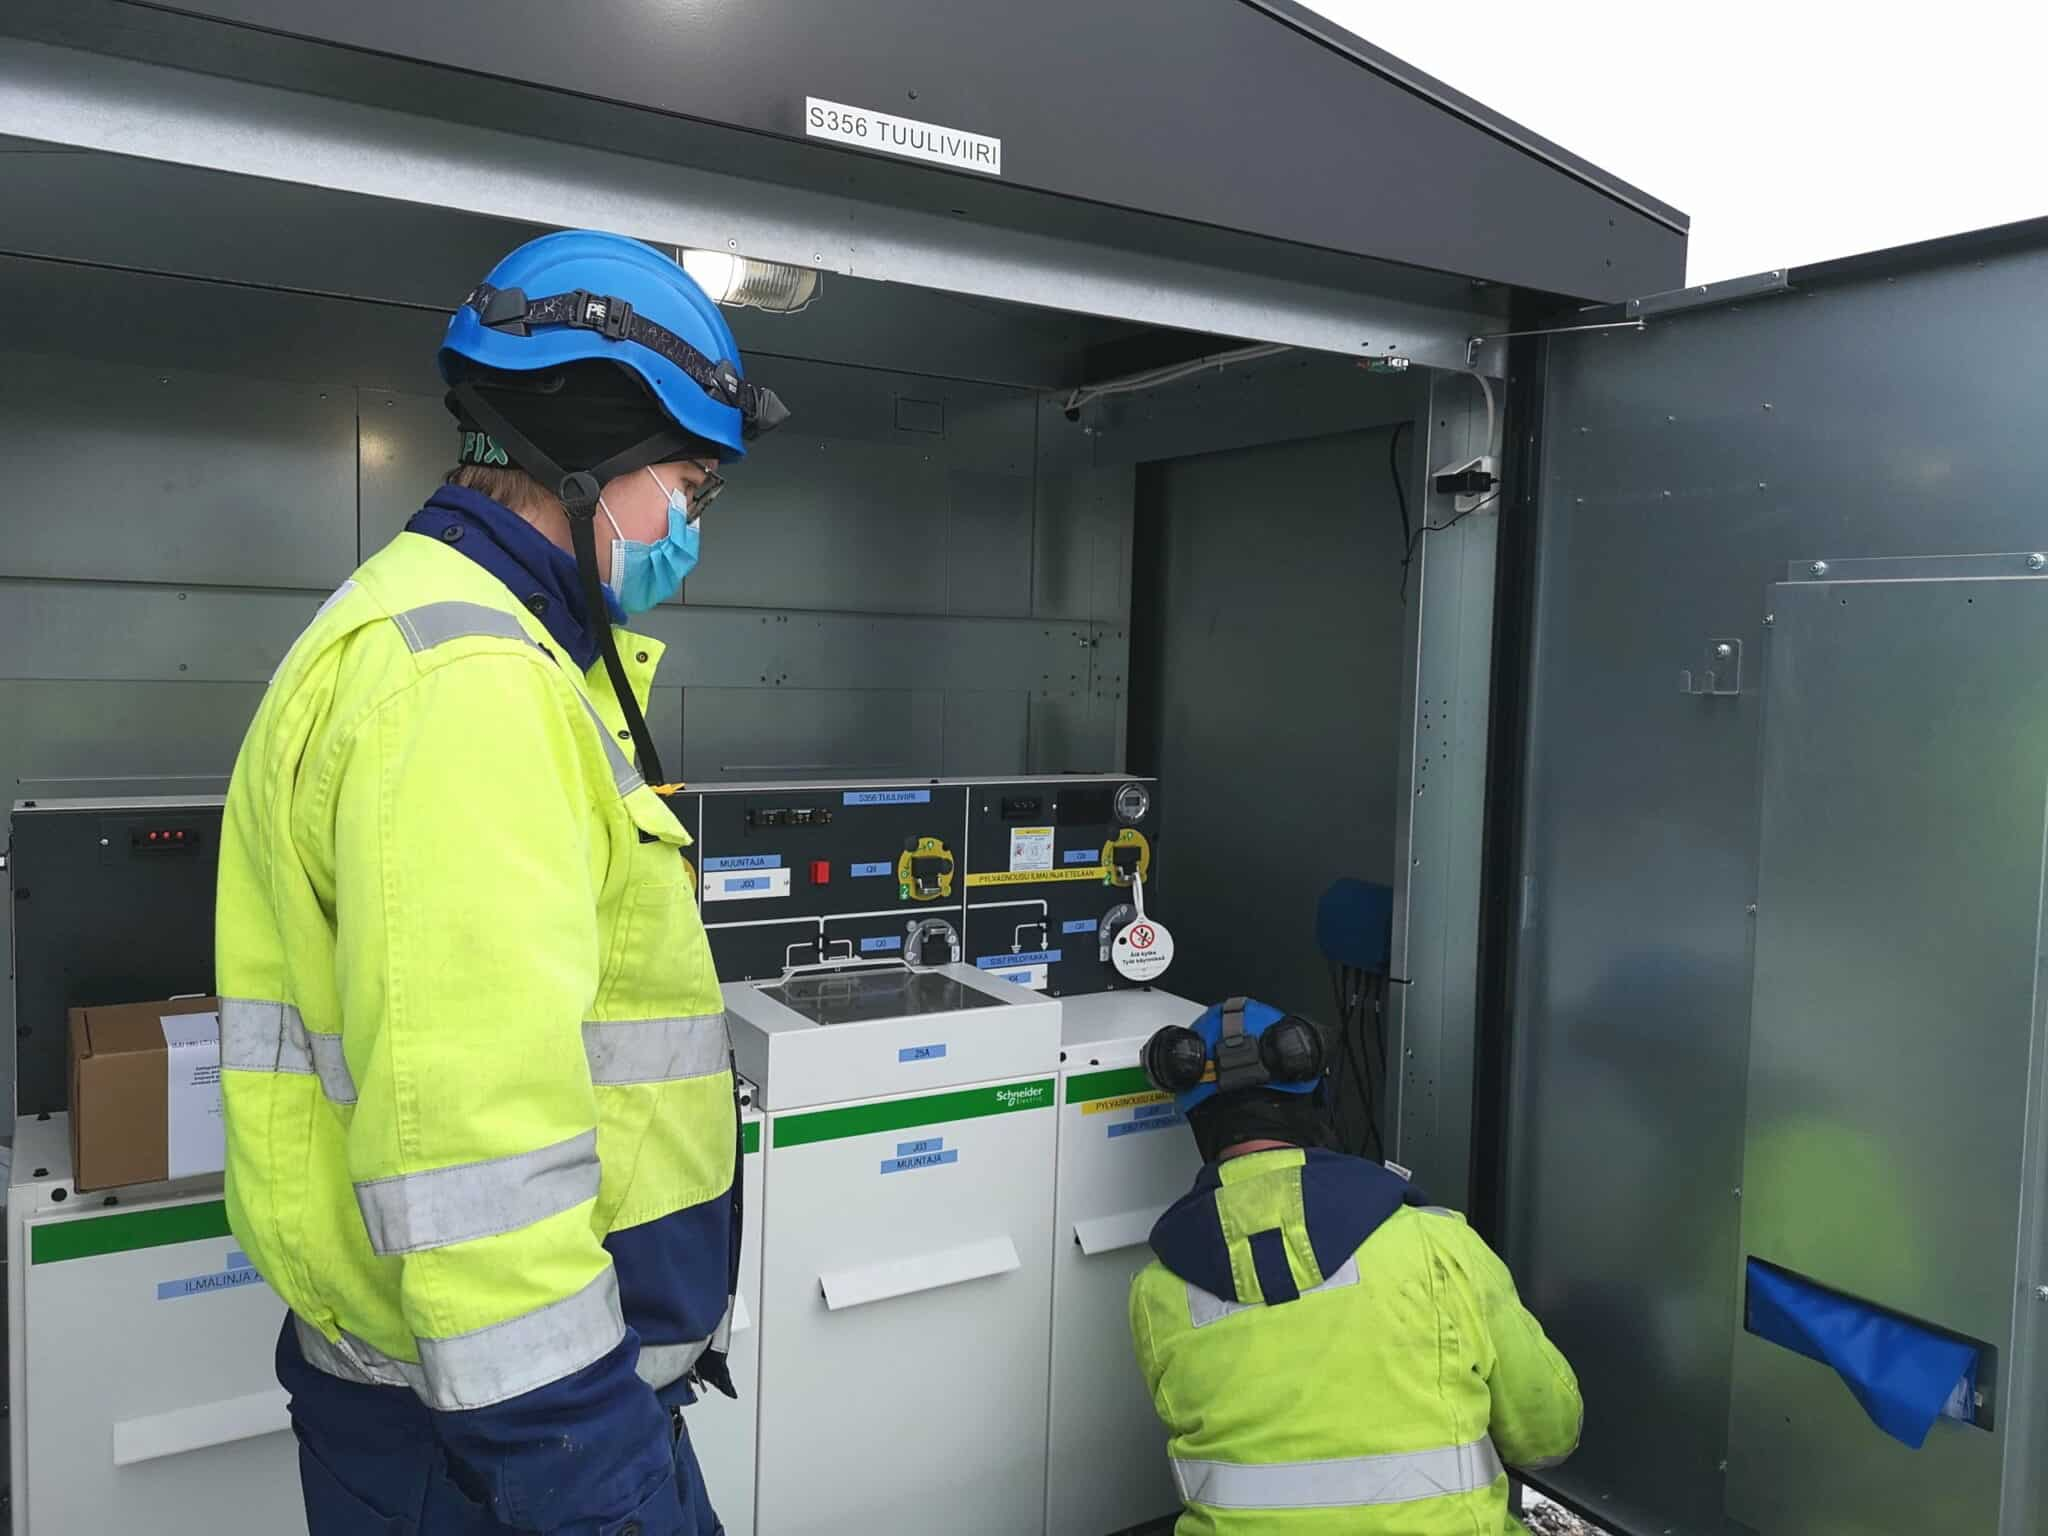 Rauman Energia Improves Its Excellence With Safegrid's IGS Solution